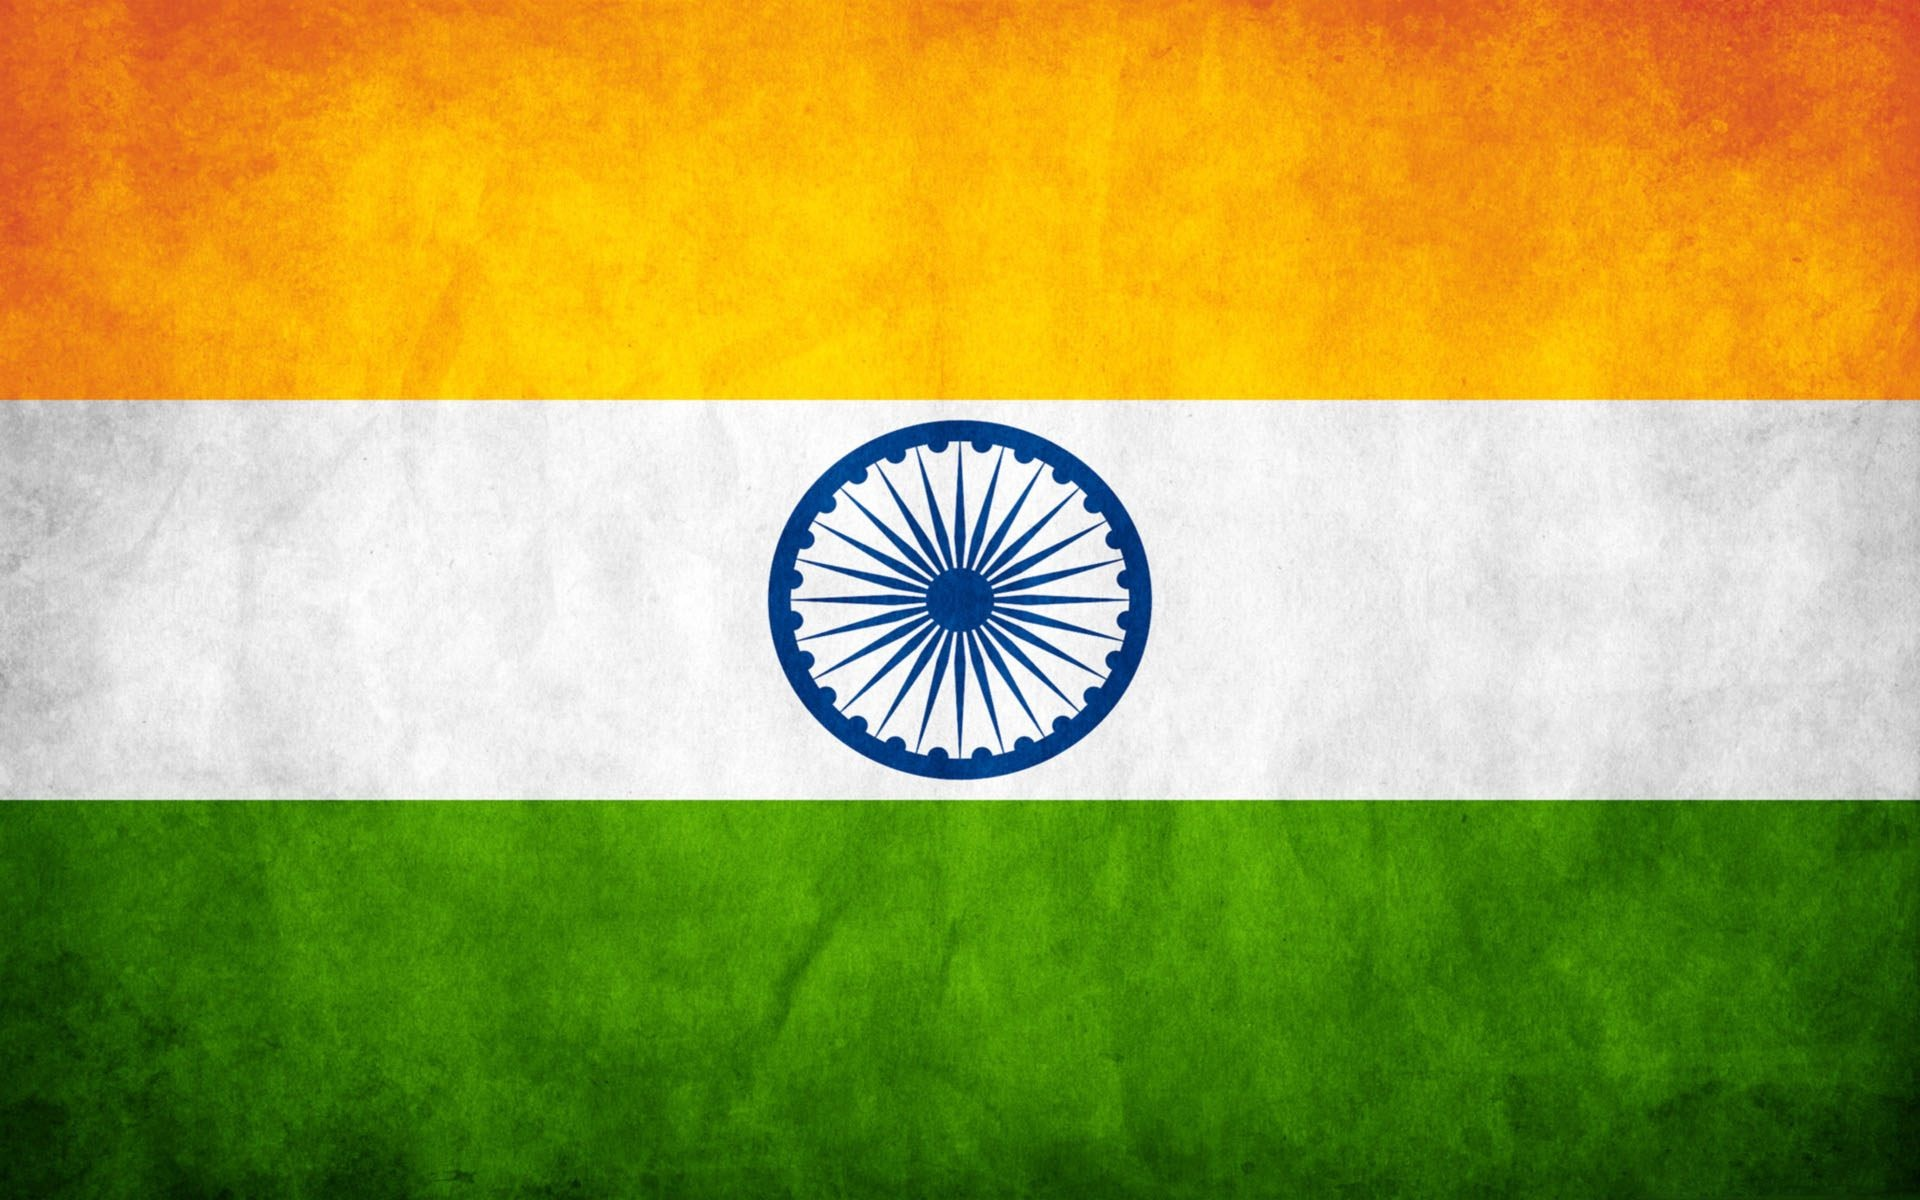 flag indian india republic wallpapers 4k 1080 1920 atulhost